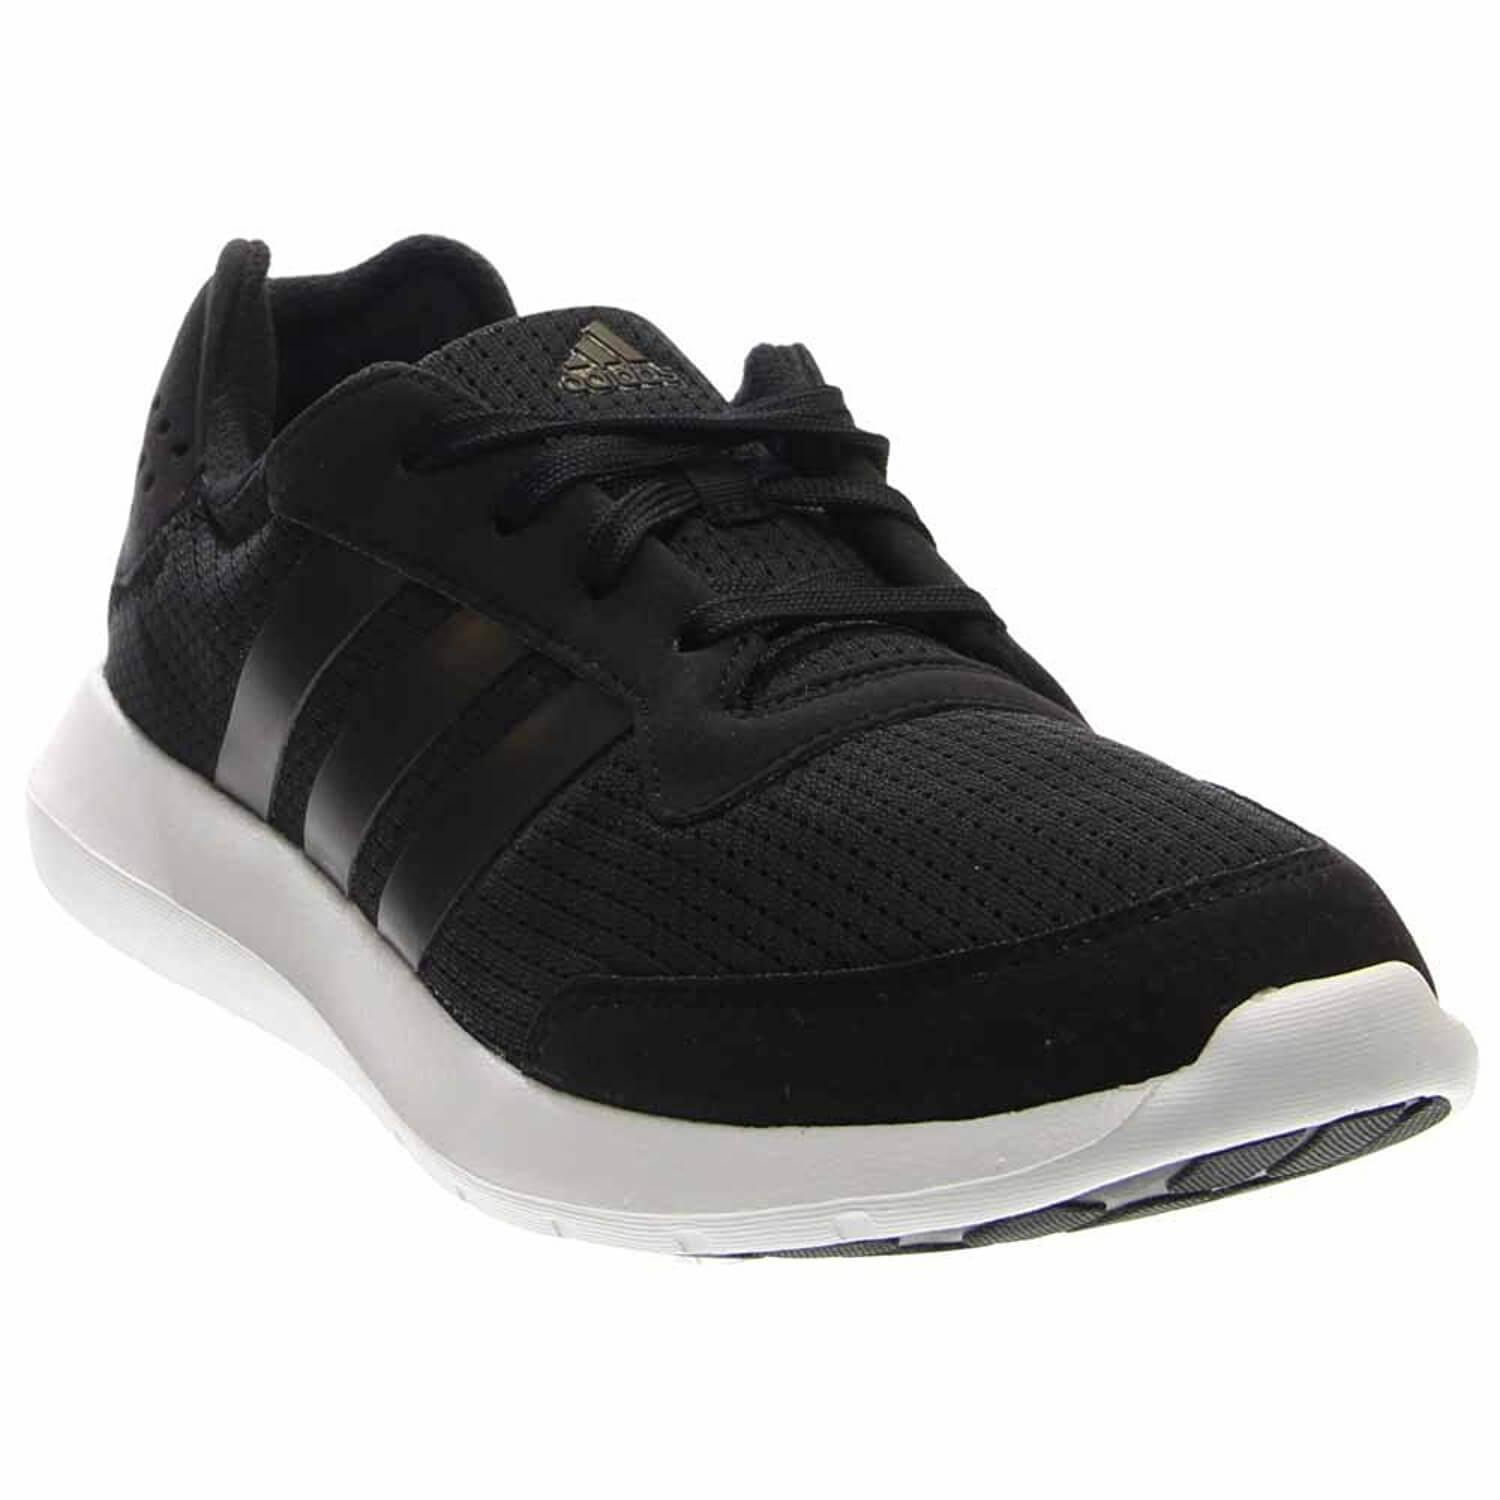 half off 7d562 9f7b0 Adidas Element Athletic - To Buy or Not in Mar 2019